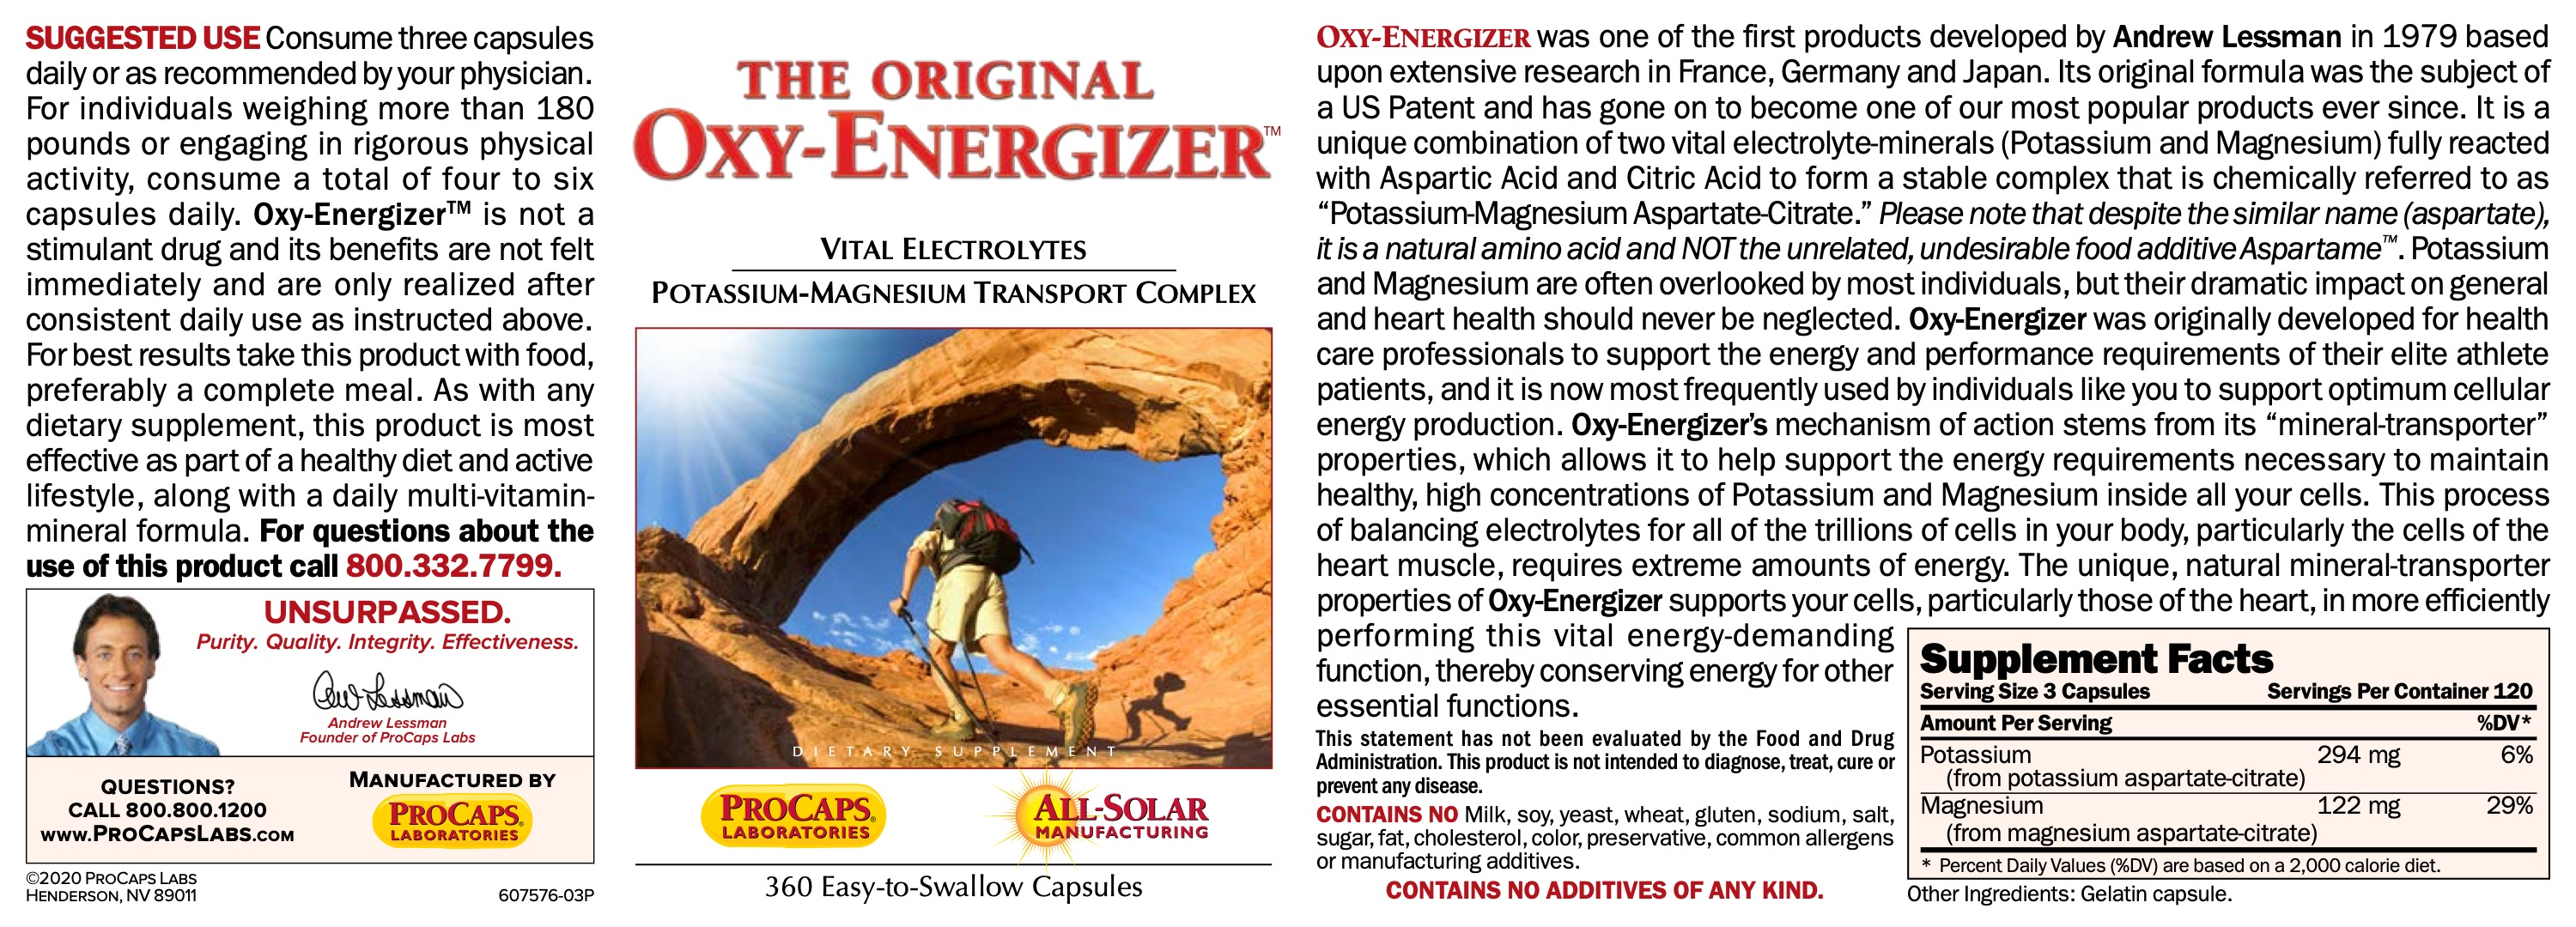 Oxy-Energizer-Capsules-Sports-Products